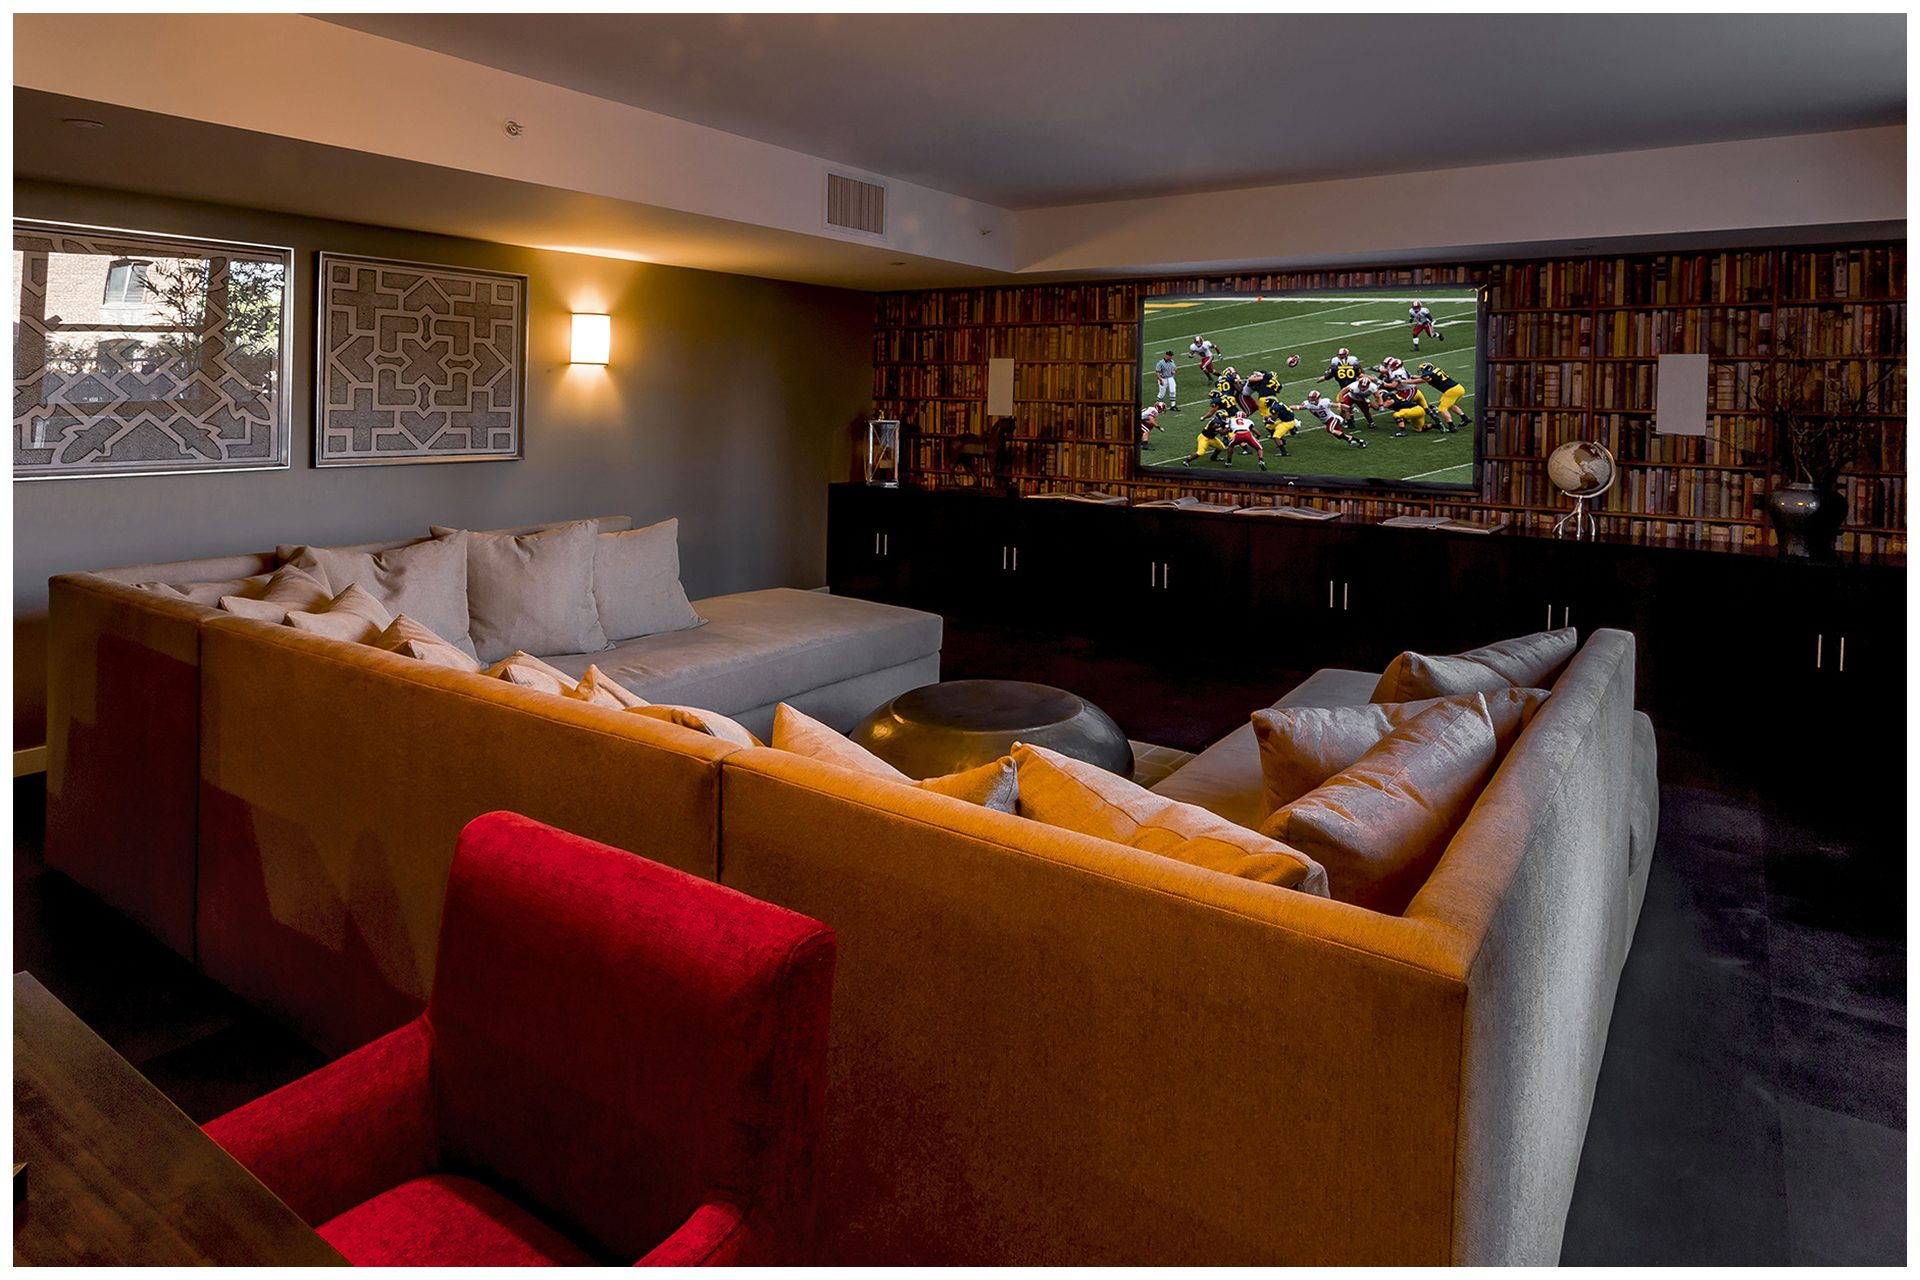 LOUNGE PROVISIONSBusiness Lounge or Game Lounge Audio Video Provisions & WiFi. Audio Video provisions are controlled via an in-room wall-mounted iPad and remotely from leasing office iPad. In-room iPad allows a limited range of volume change for music.